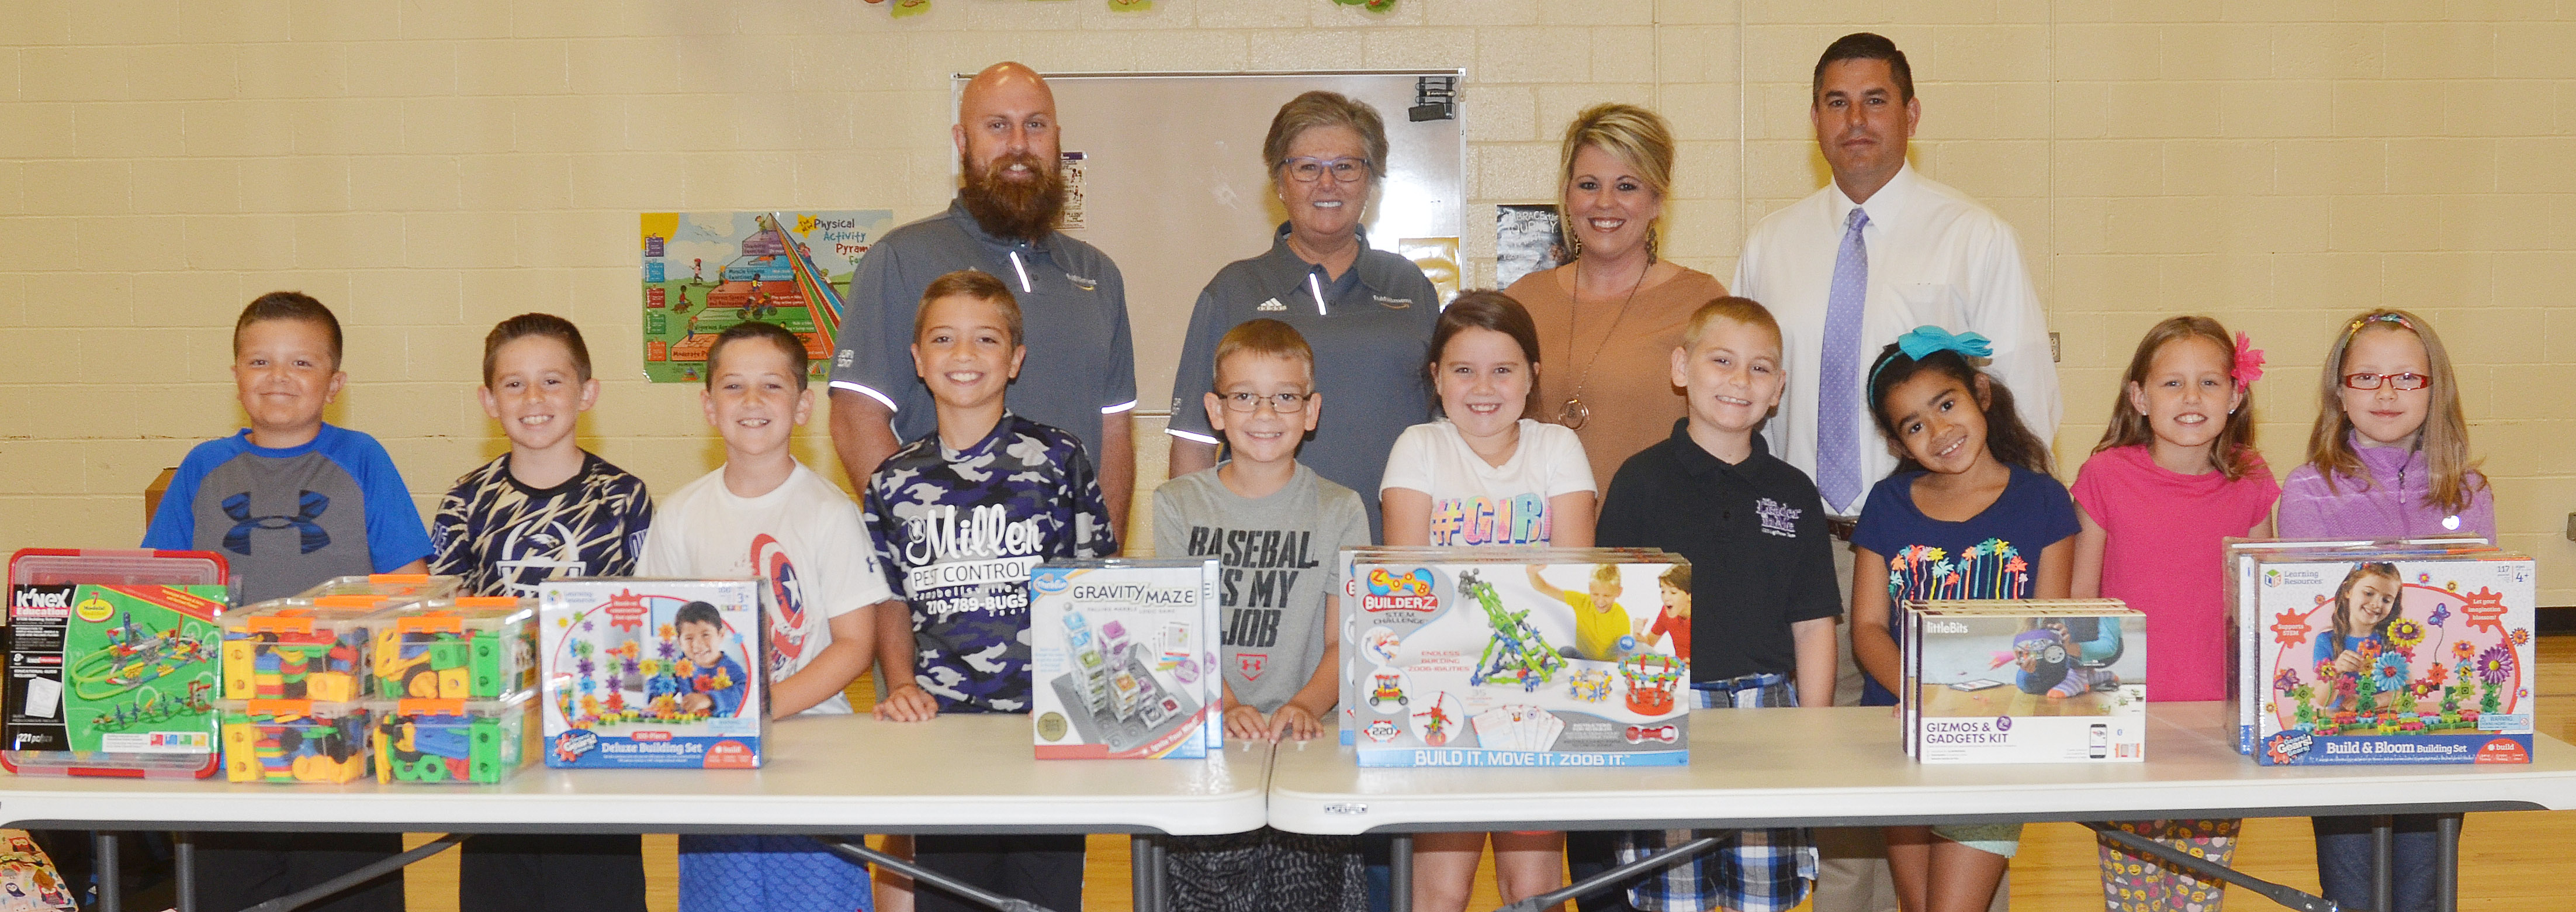 Chad Forsyth, an operations manager, and Tammy Cox, an administrative assistant at Amazon, recently came to CES to donate some STEM toys during a special assembly. Pictured are, from left, front, CES third-graders Cayton Lawhorn, Lanigan Price and Luke Adkins, fourth-graders Carson Mills, Cameron Estes and Maylee Wilds, third-graders Joseph Greer and Sophia Santos and fourth-graders Madisyn Bradfield and Gracie Pendleton. Back, Forsyth, Cox, CES Principal Elisha Rhodes and Campbellsville Independent Schools Superintendent Kirby Smith.